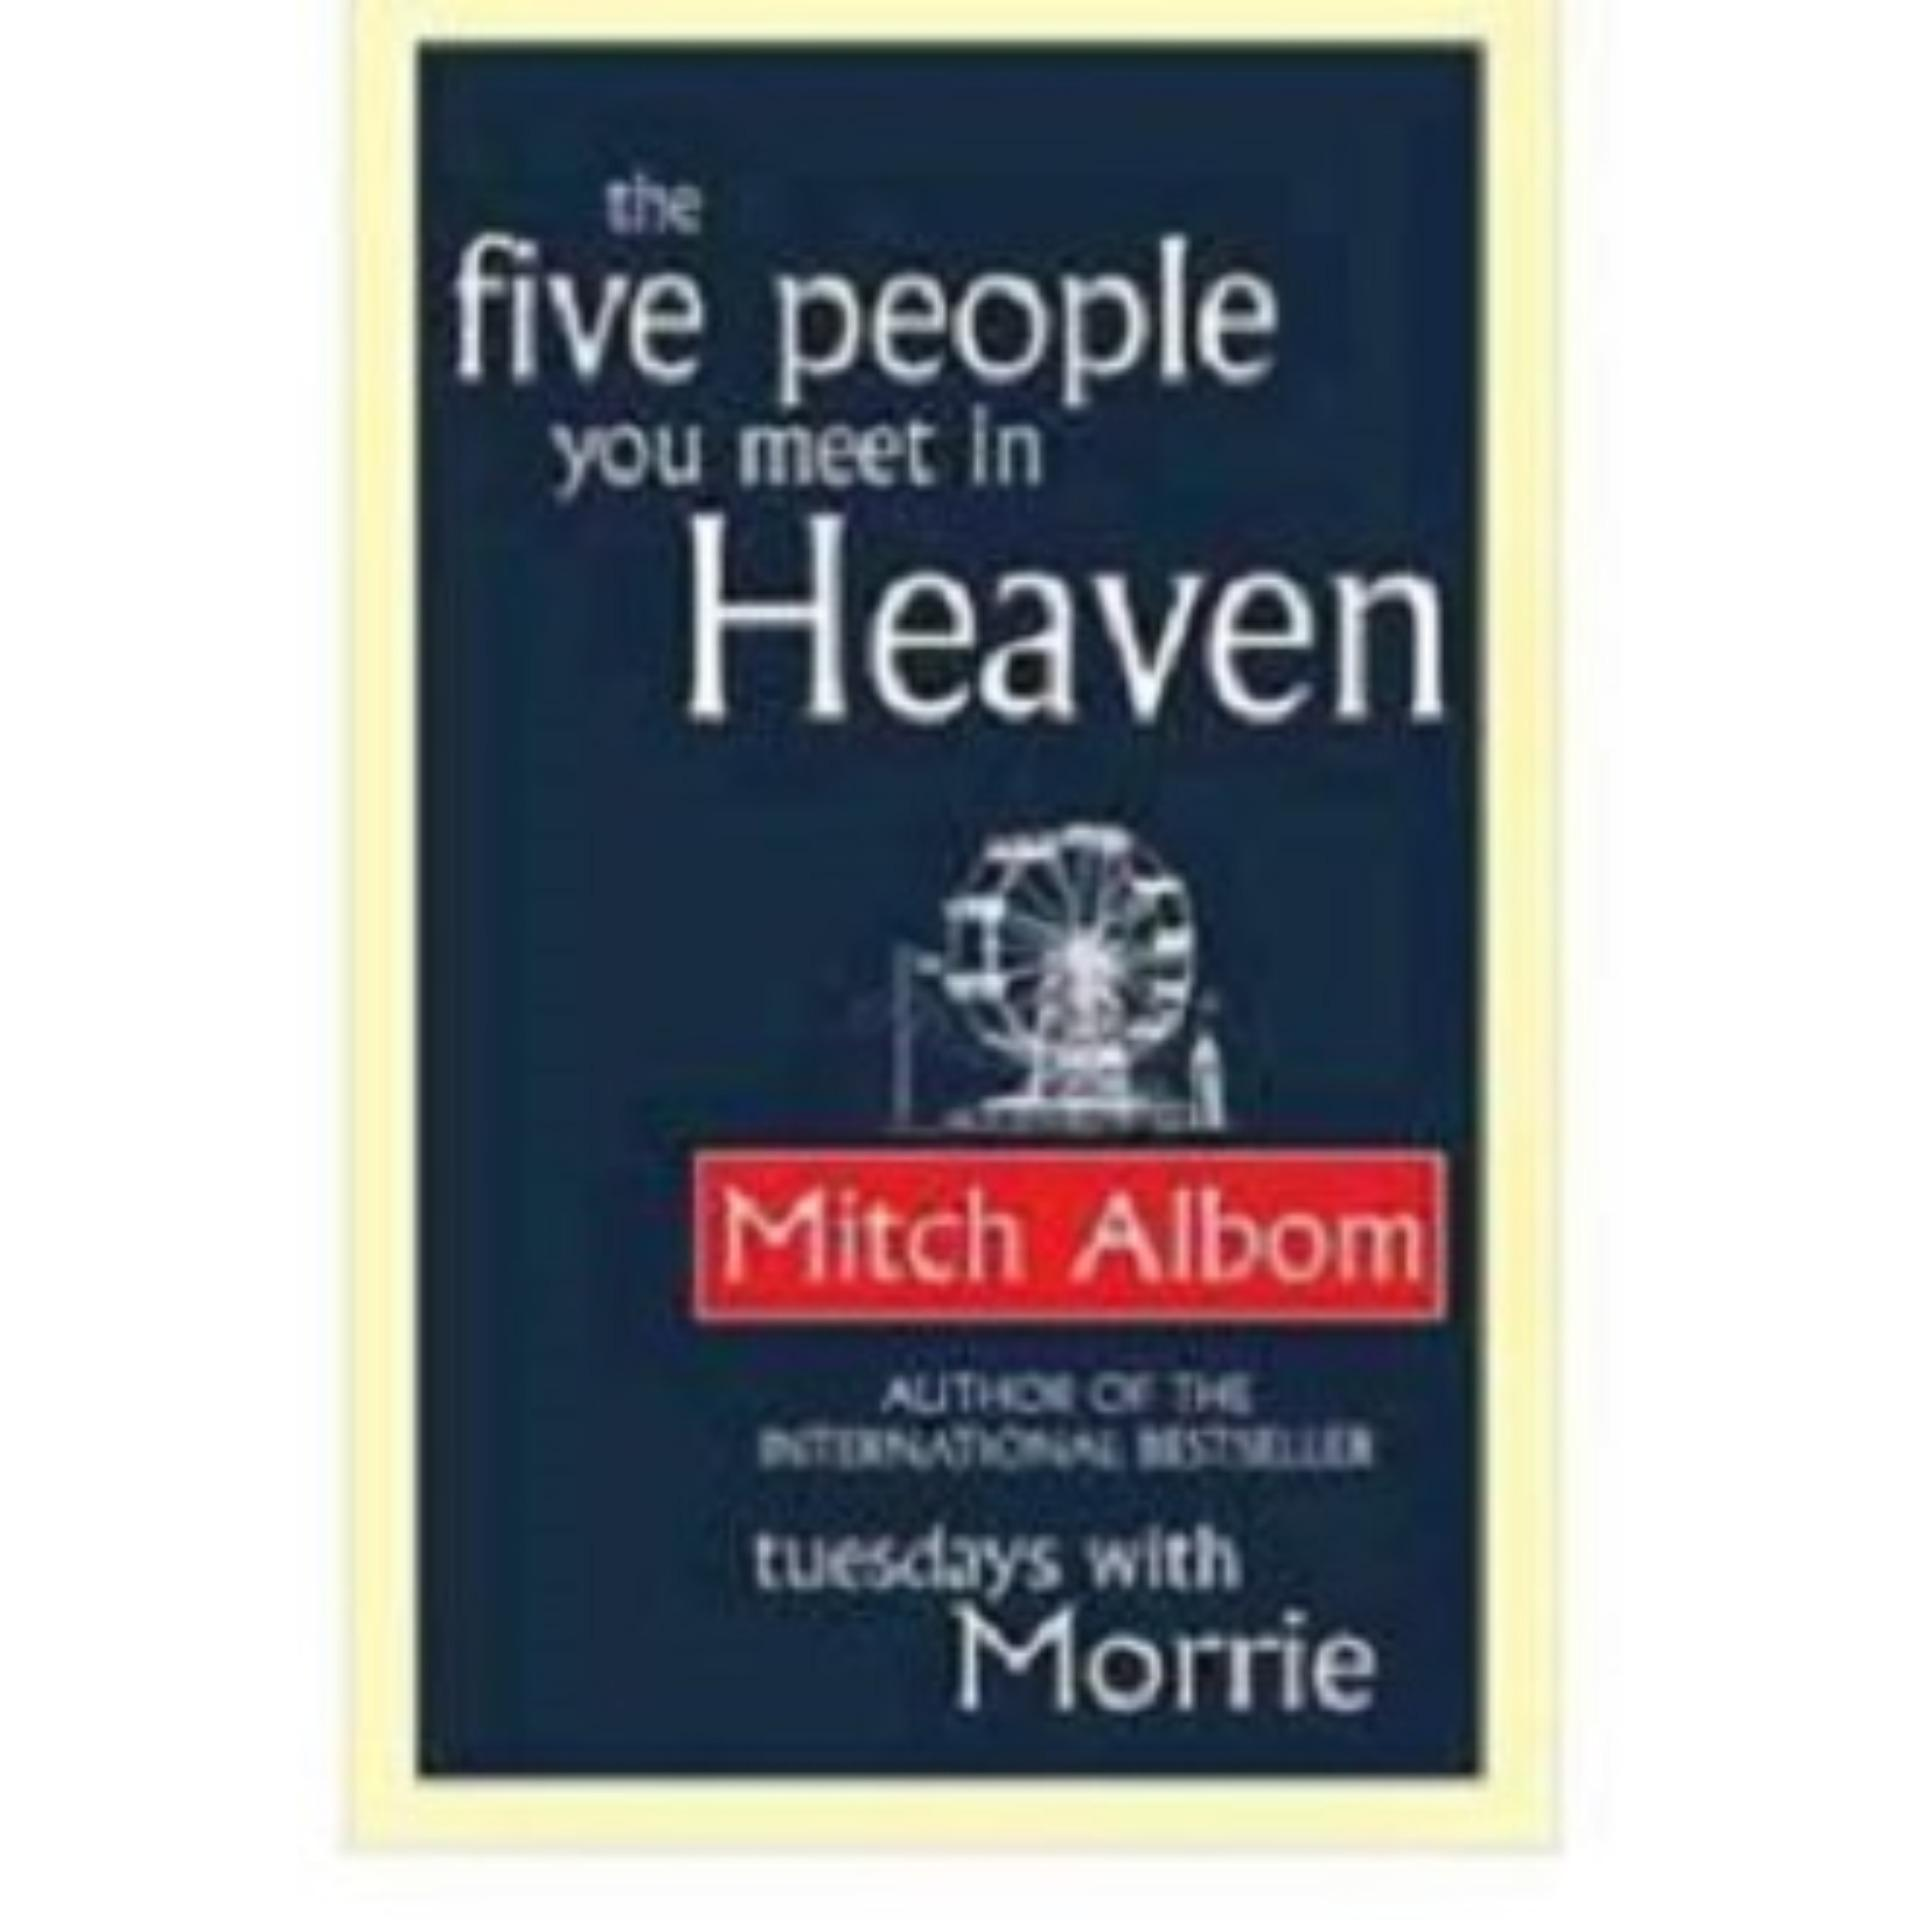 The Five People You Meet in Heaven Novel by Mitch Albom ( 5 people in heaven)(fast email)